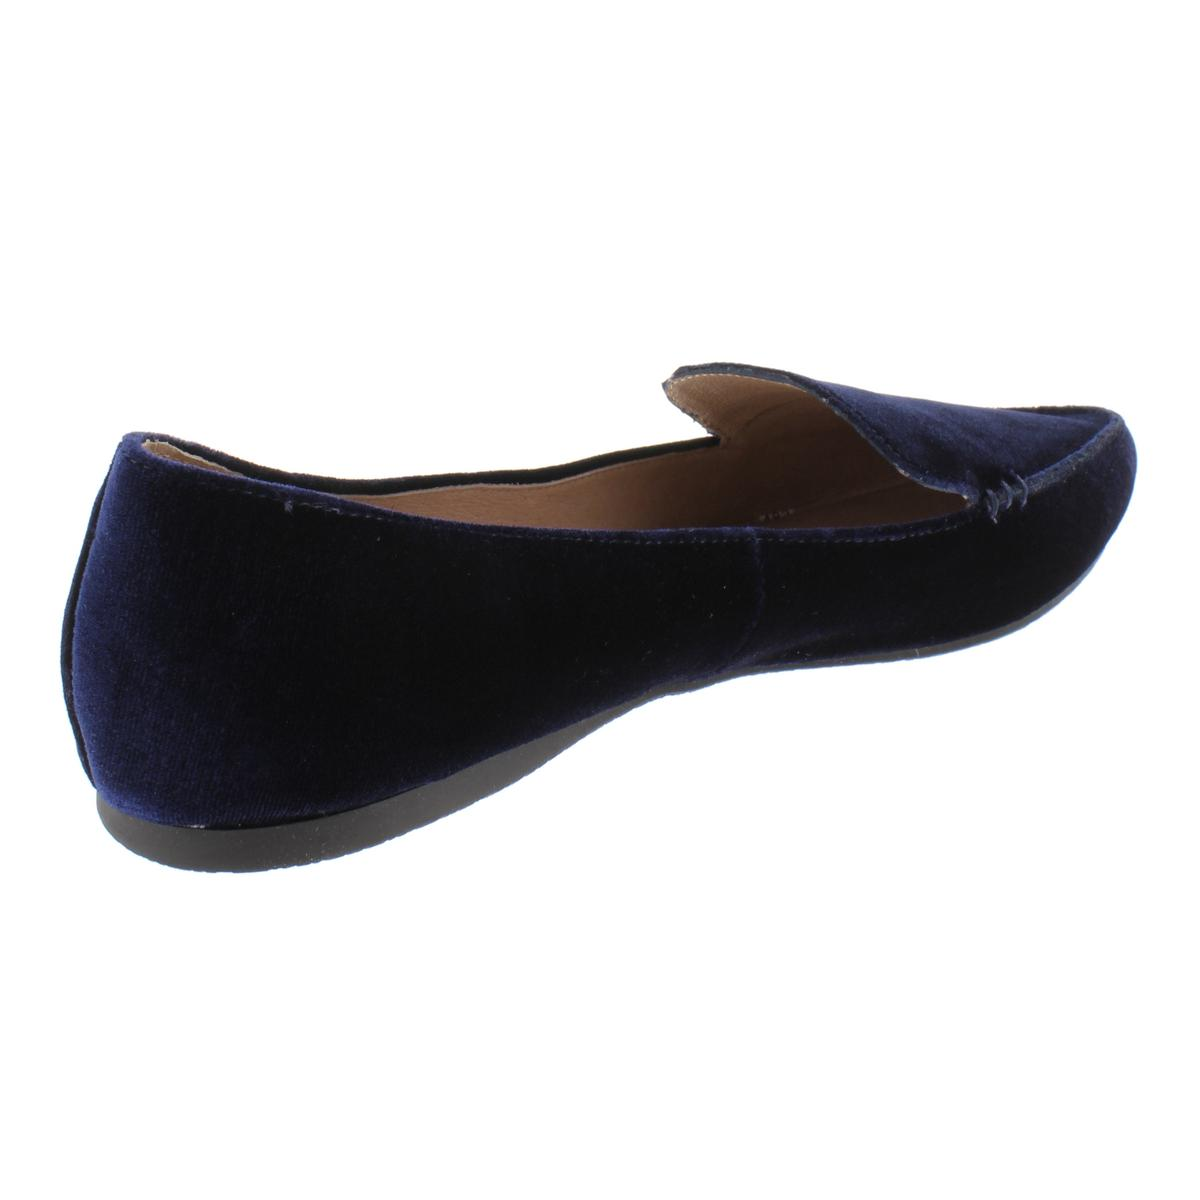 Steve-Madden-Womens-Feather-Dress-Loafers-Shoes-BHFO-7353 thumbnail 6